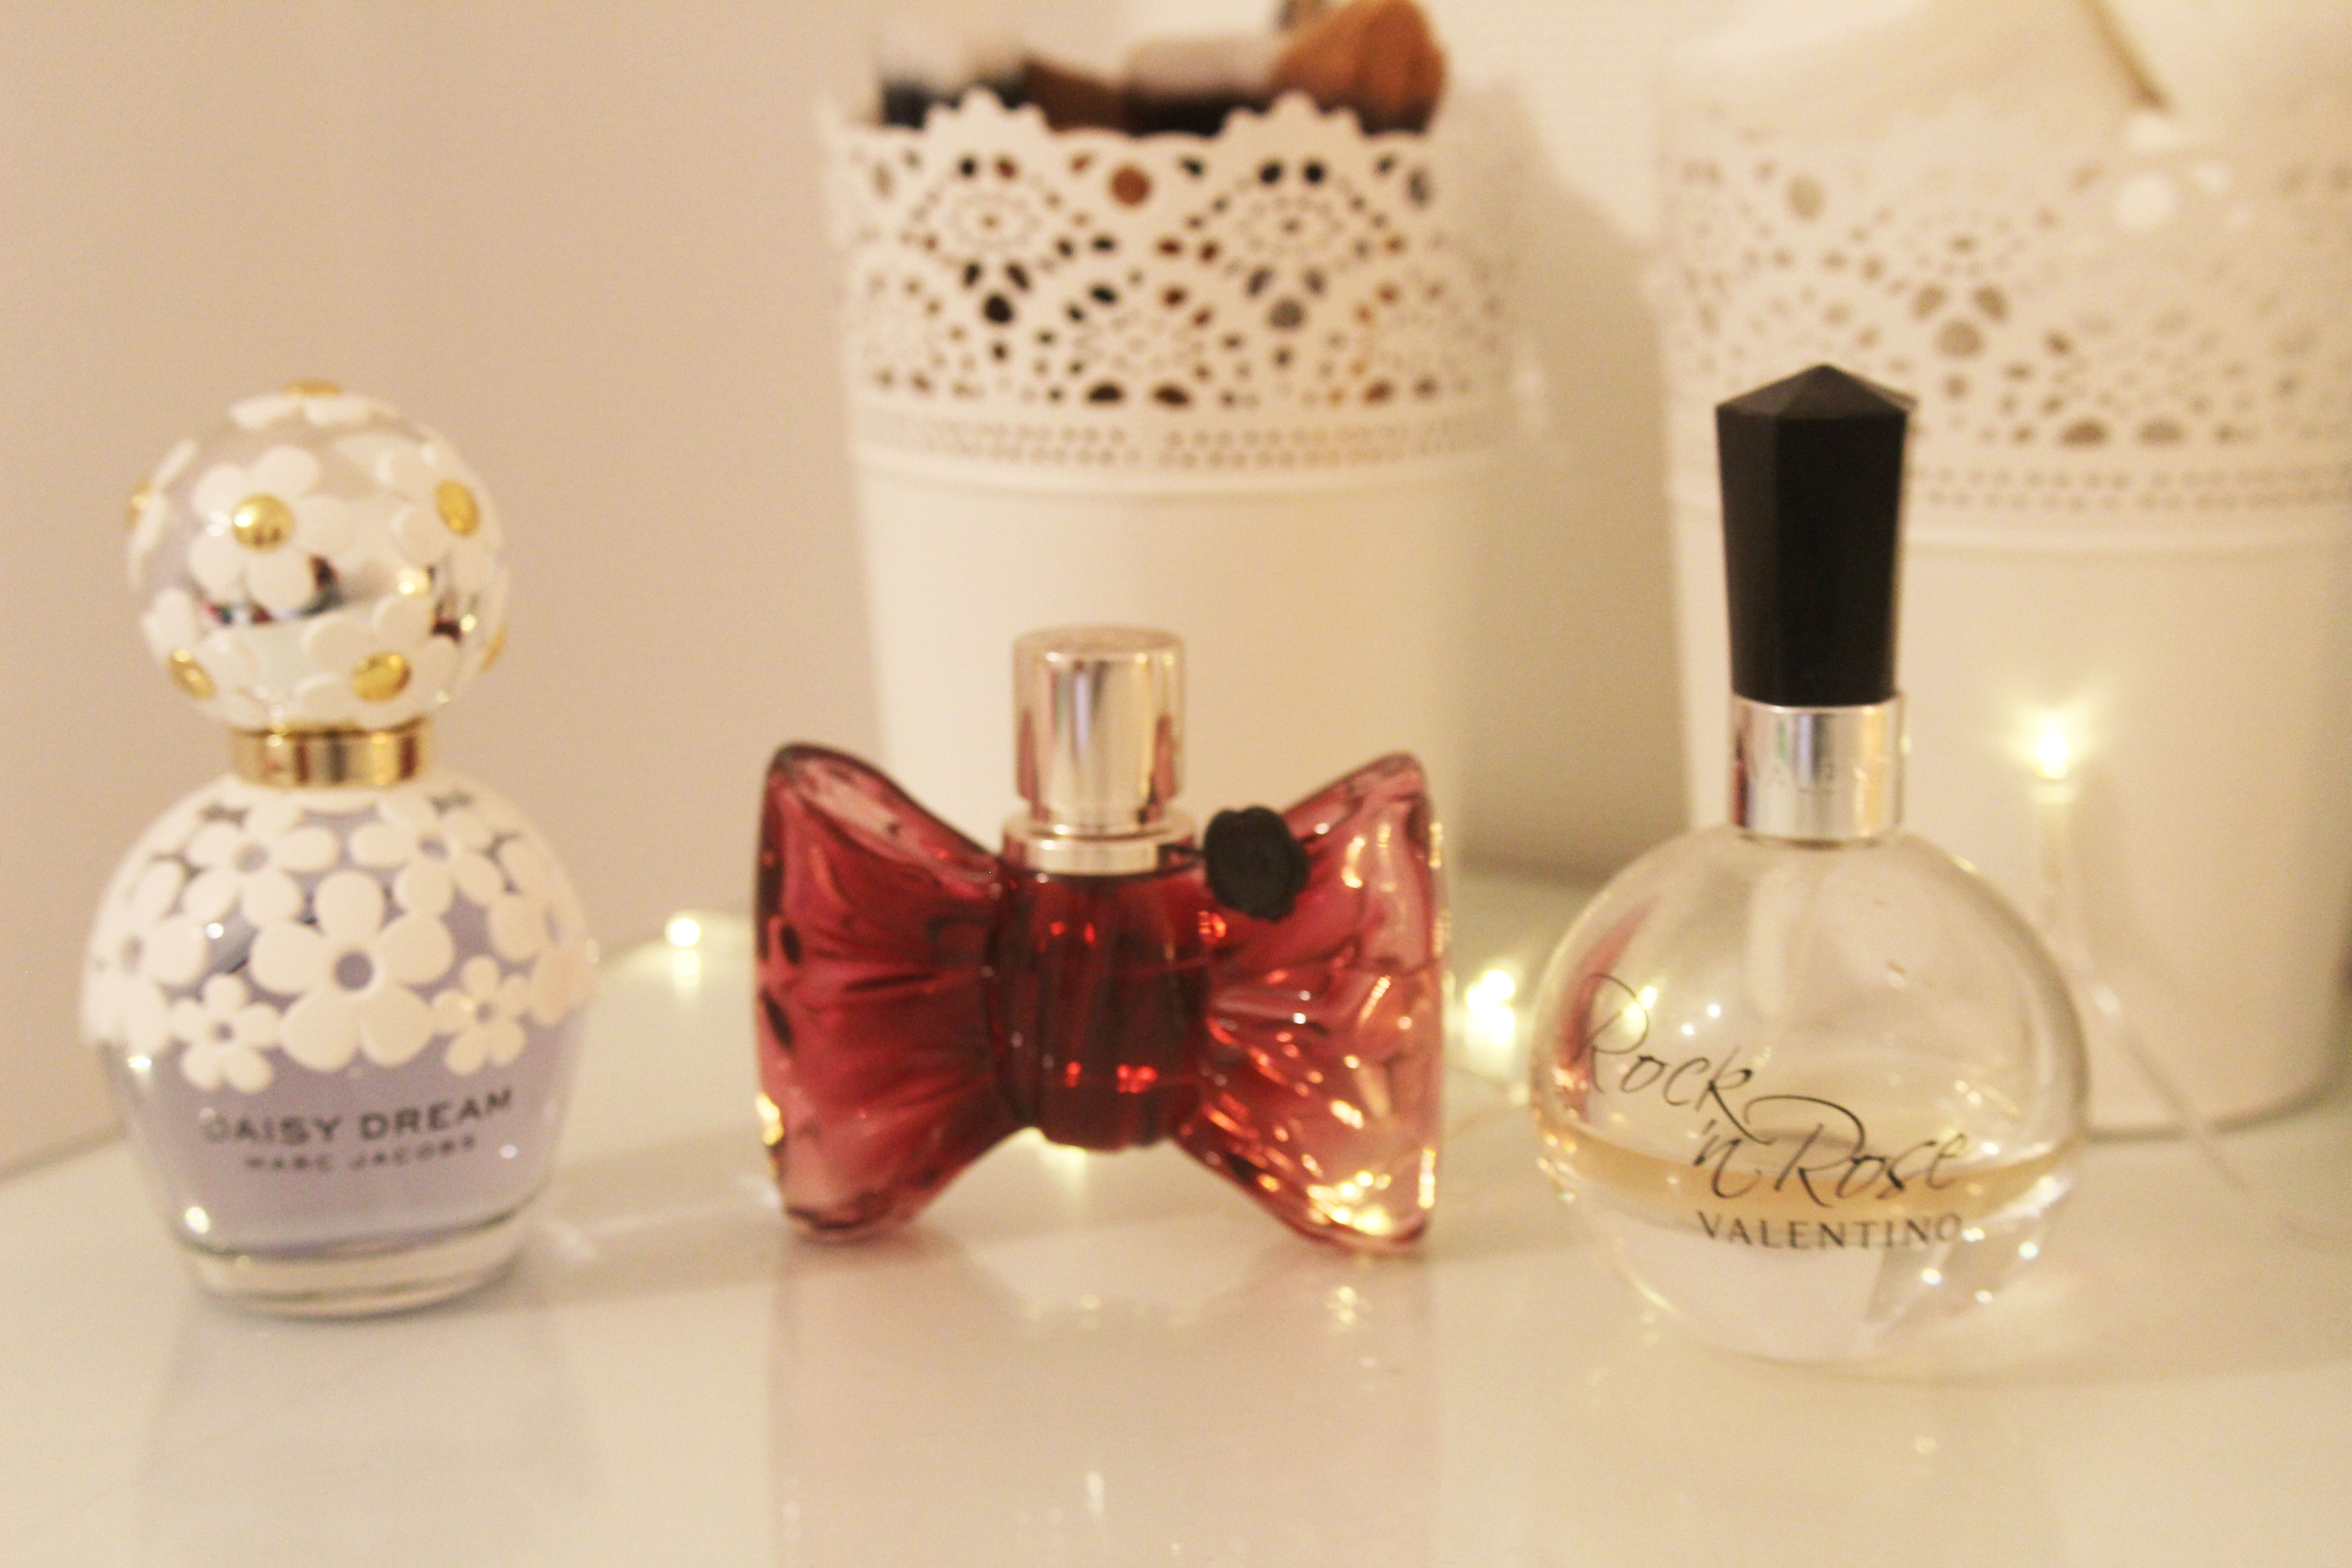 My Current Perfume Favourites